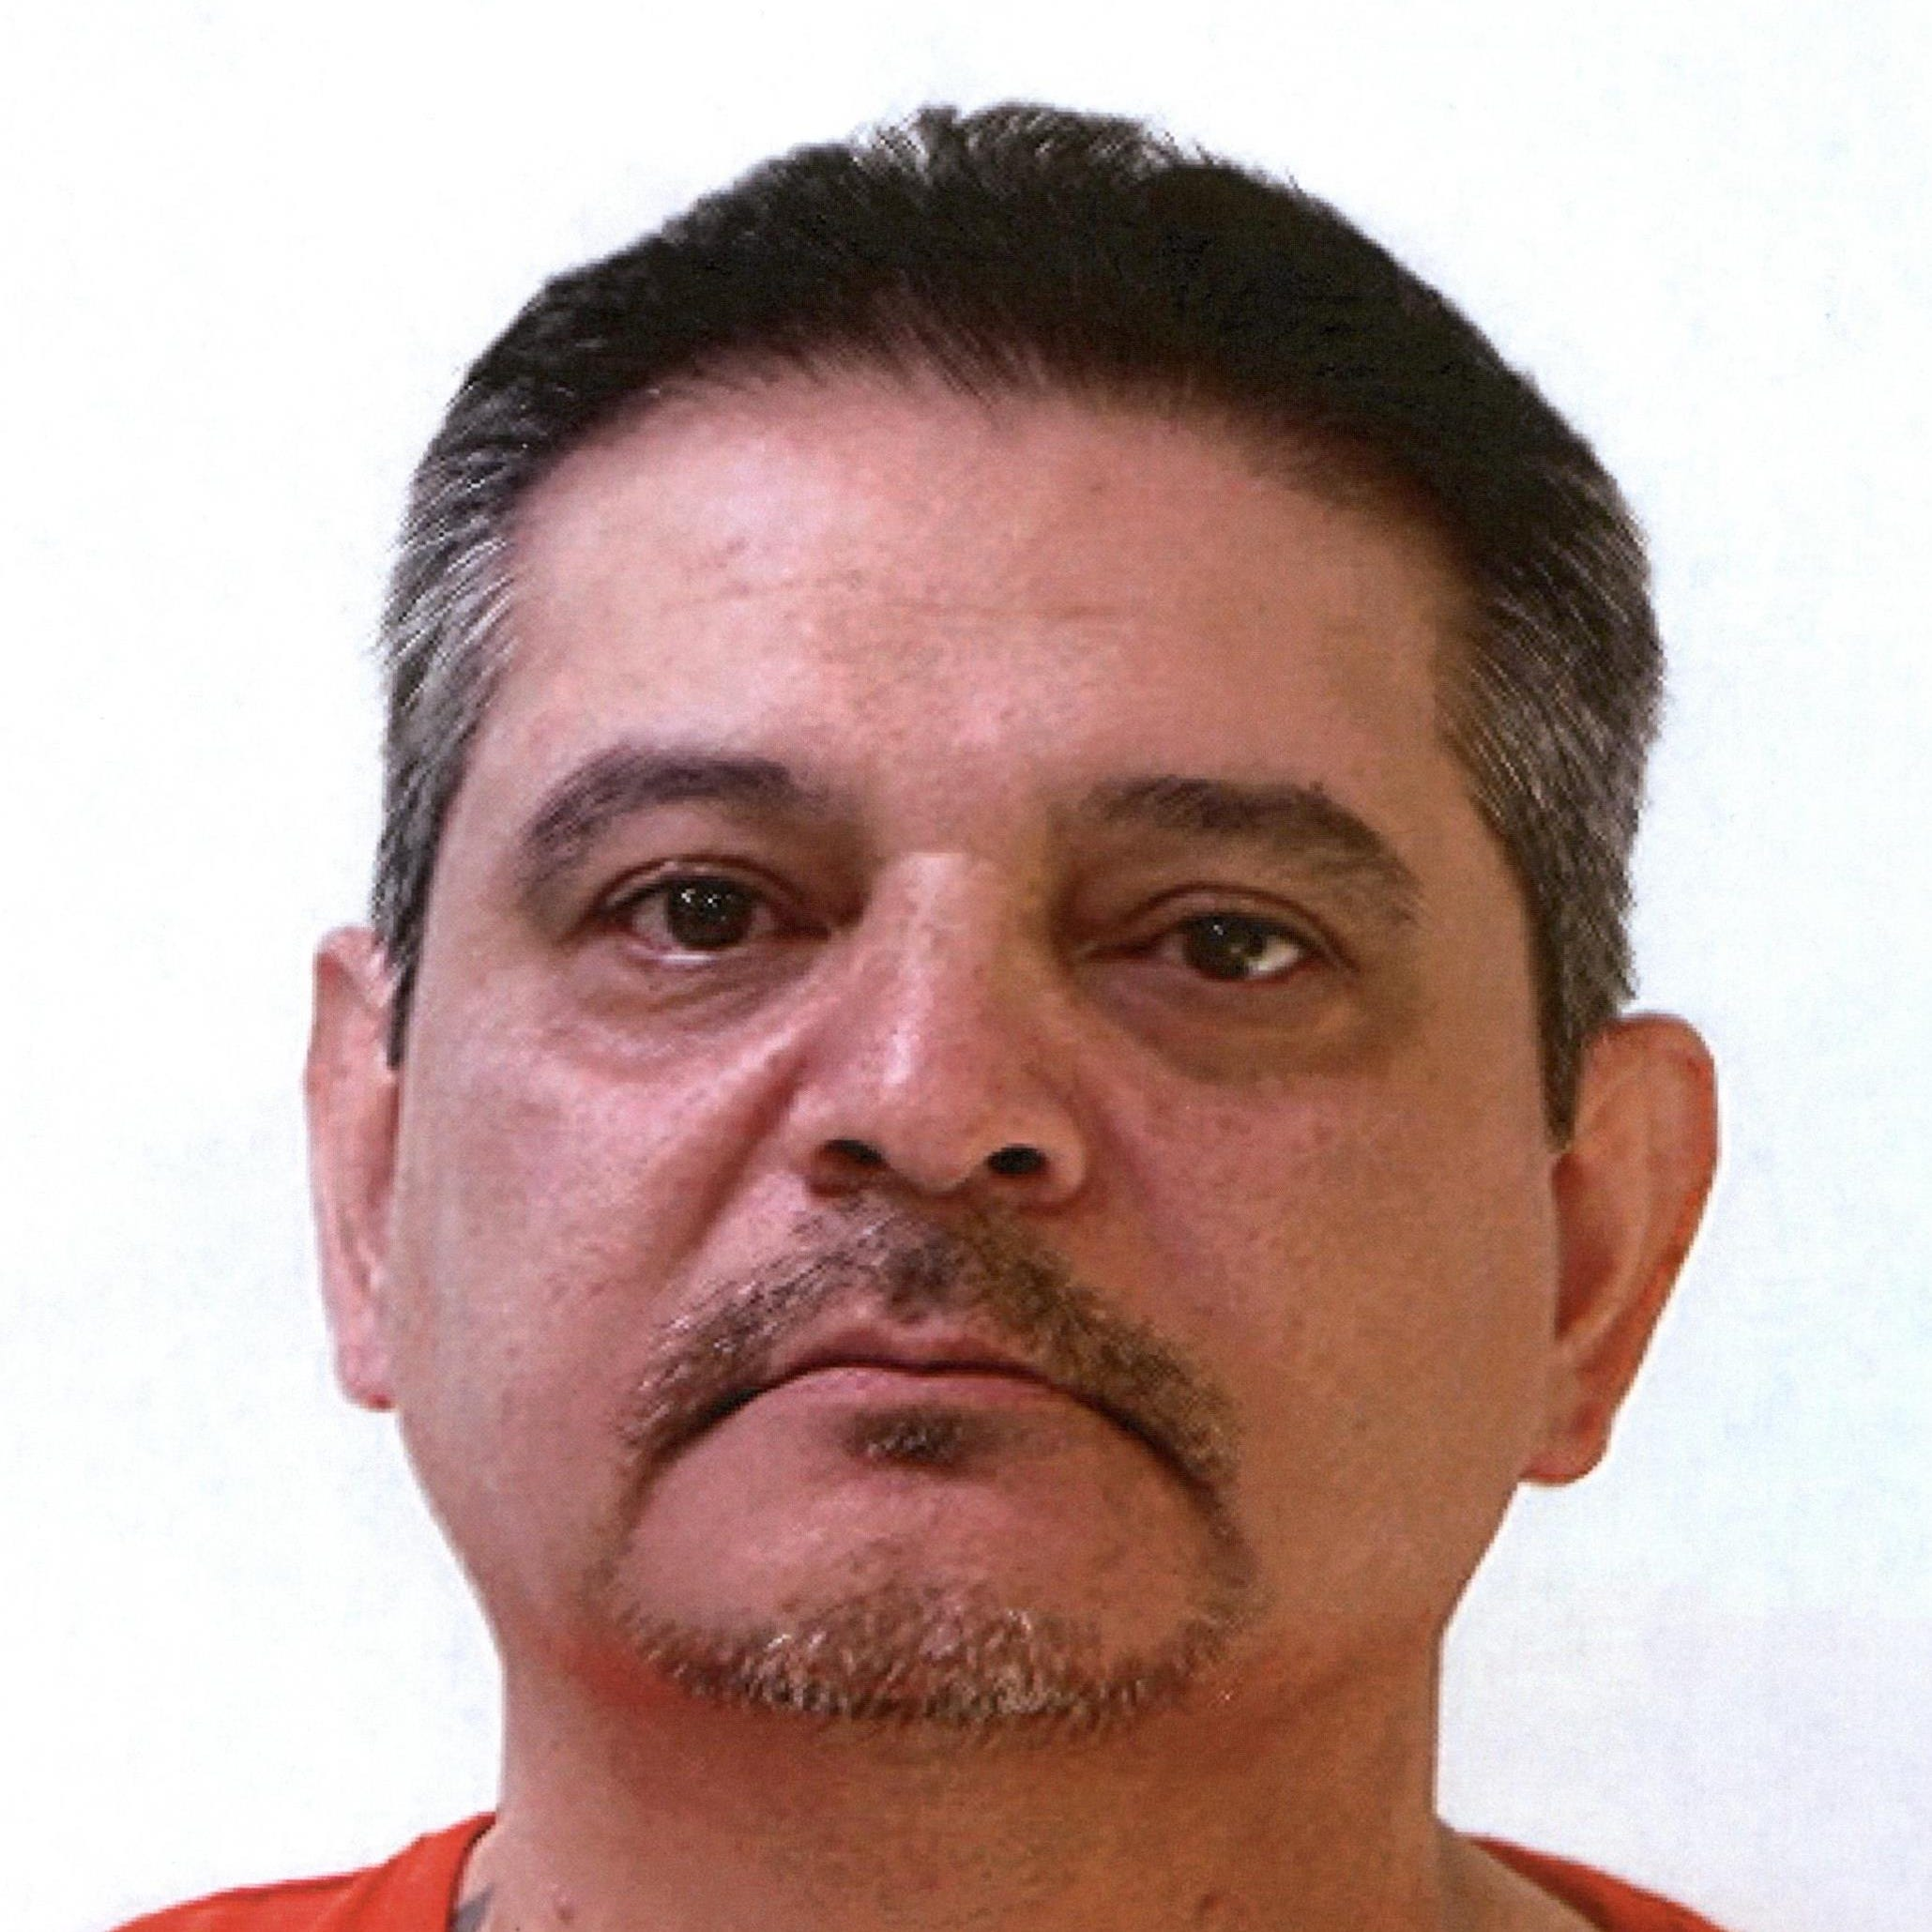 Barrio Azteca member sentence to 19 years for drug trafficking